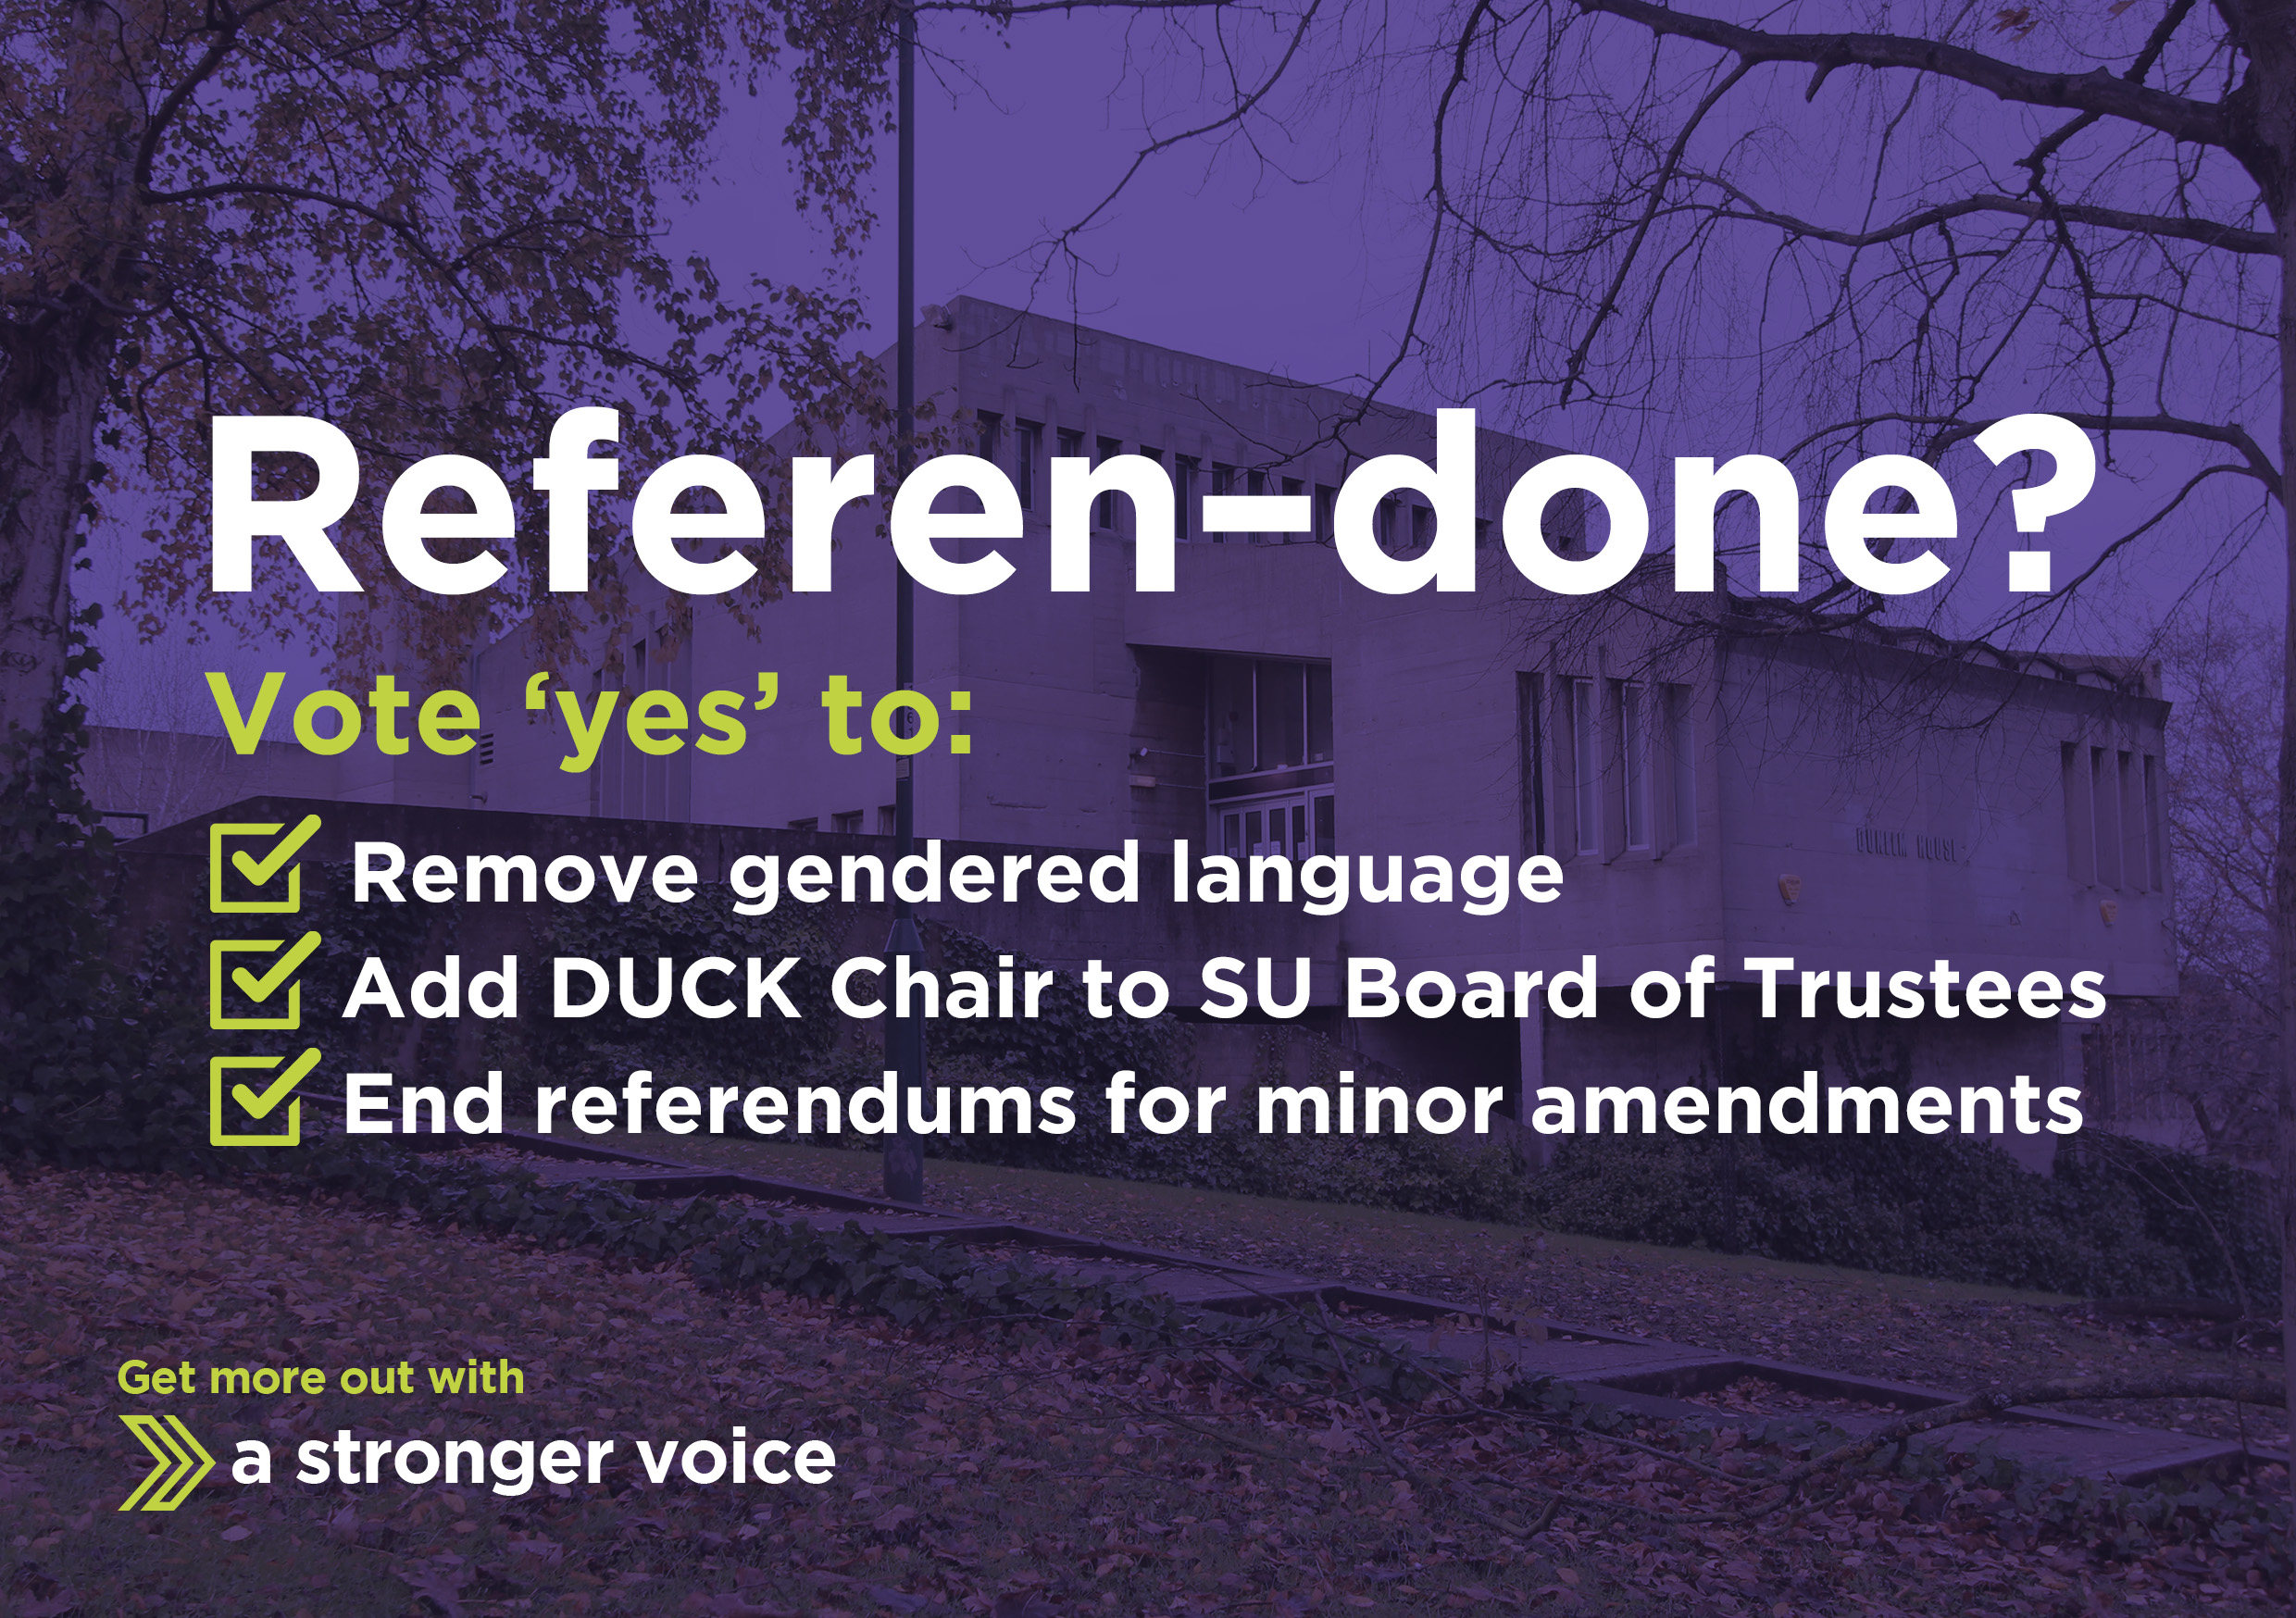 Referen-done? Vote 'yes' to: Remove gendered language. Add DUCK Chair to SU Board of Trustees. End referendums for minor amendments.